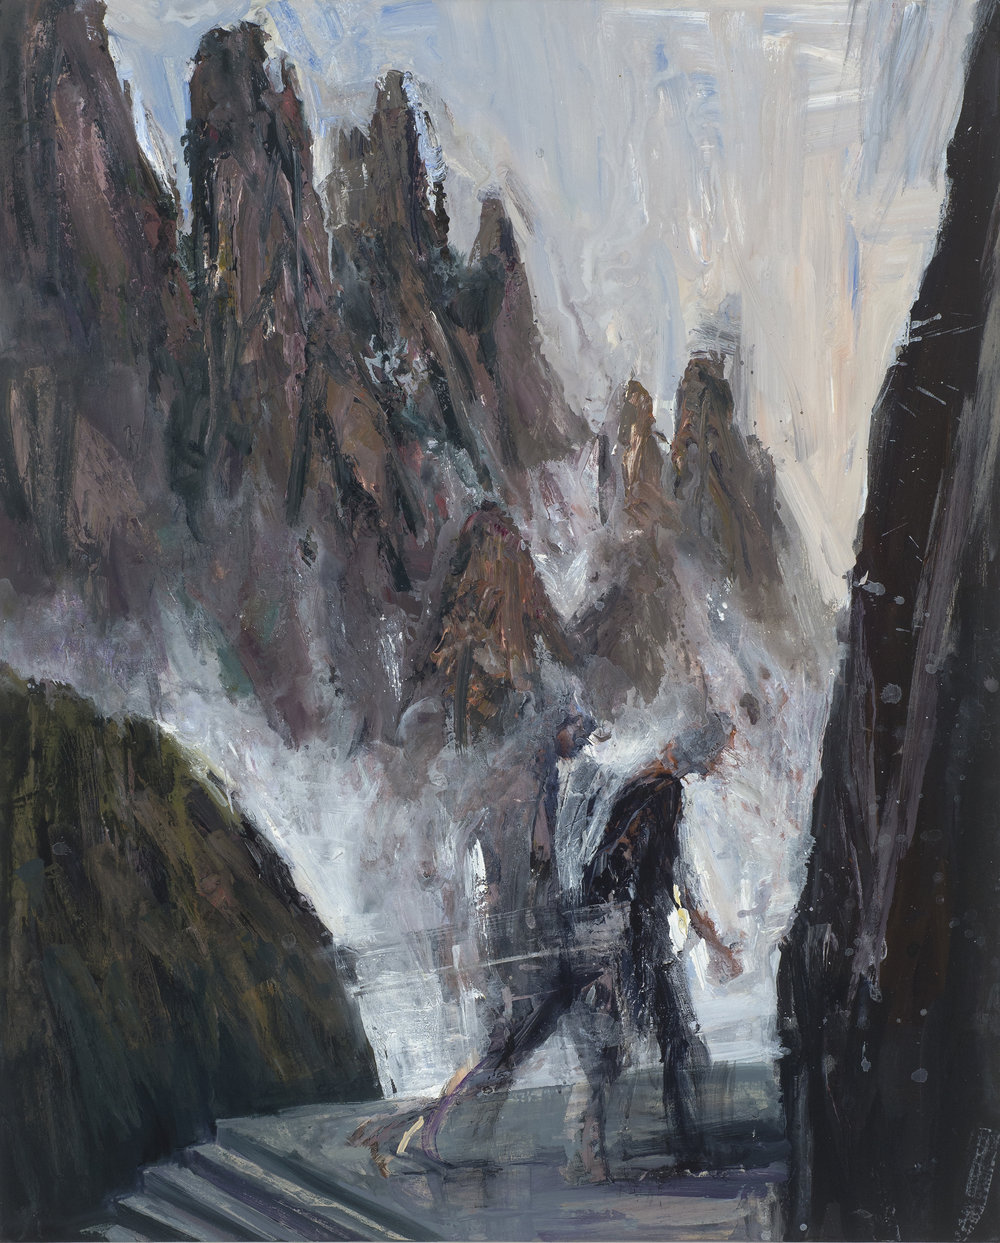 Figures & mountains in mist